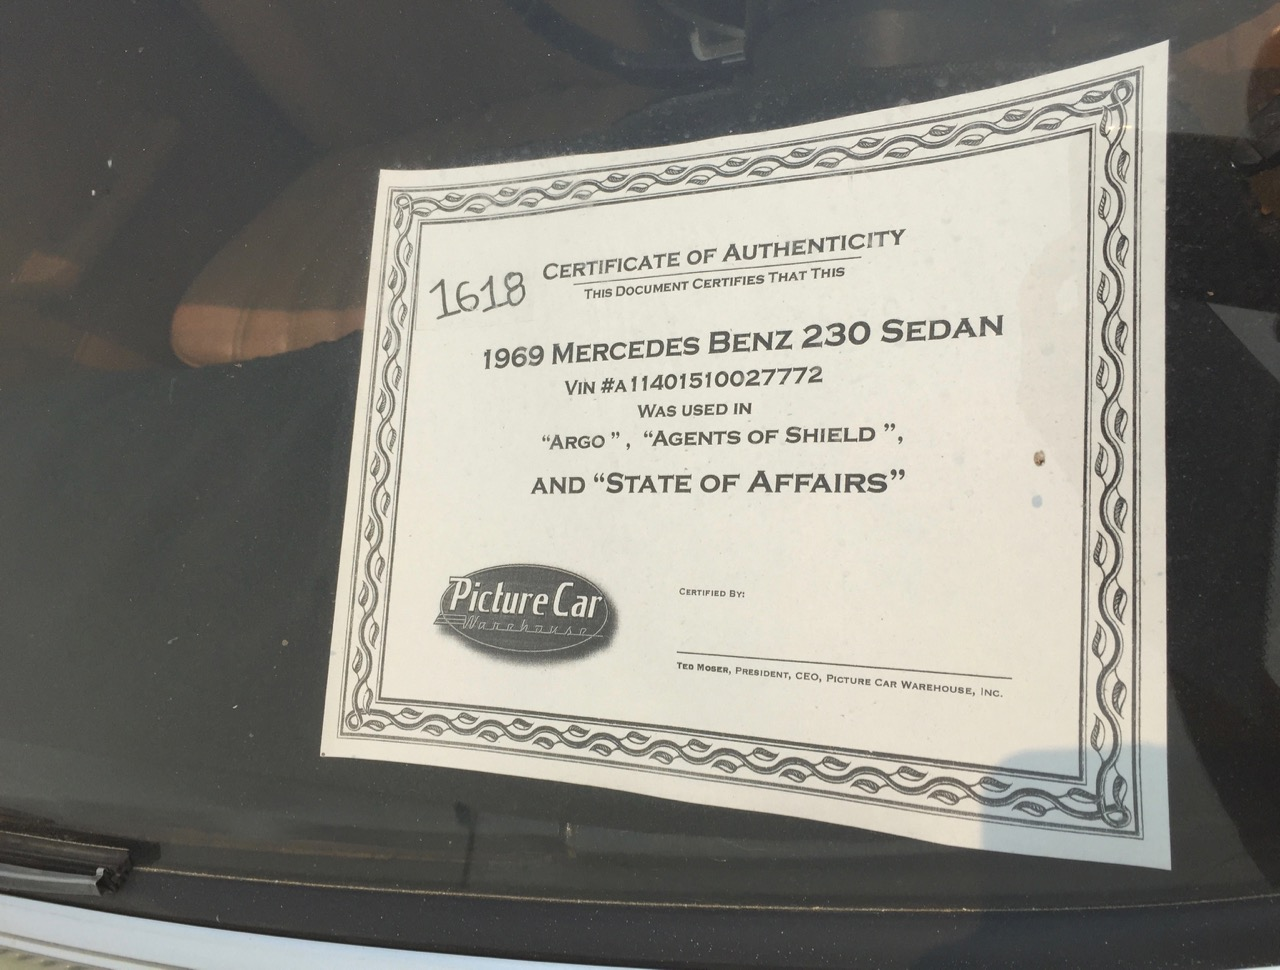 Certificate of Authenticity on 1969 Mercedes-Benz 230 sedan